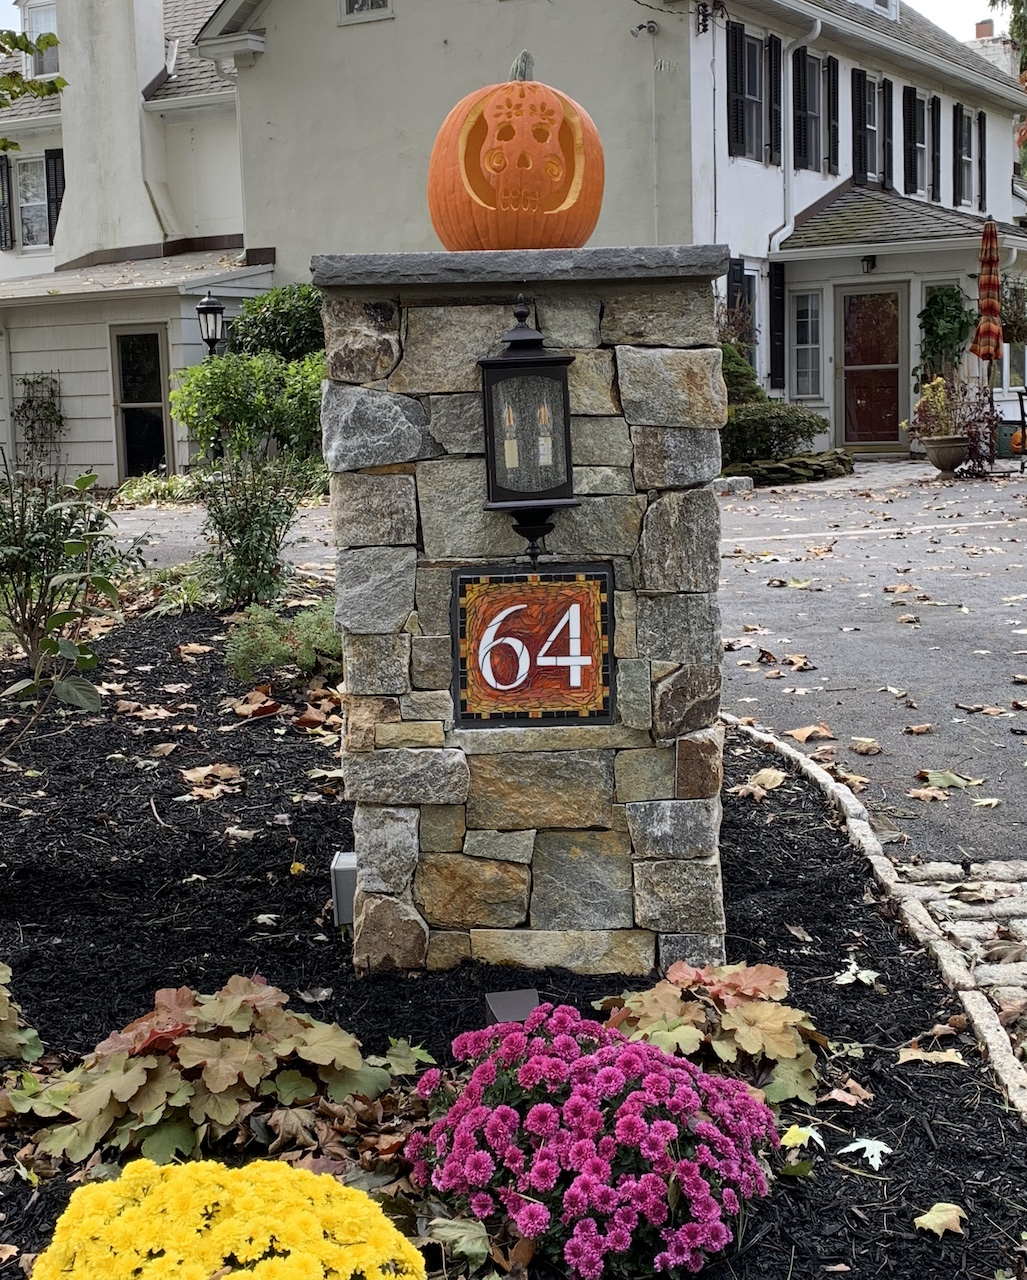 House Number 64 in Orange Ombré Colorway with a Black Border by Nutmeg Designs